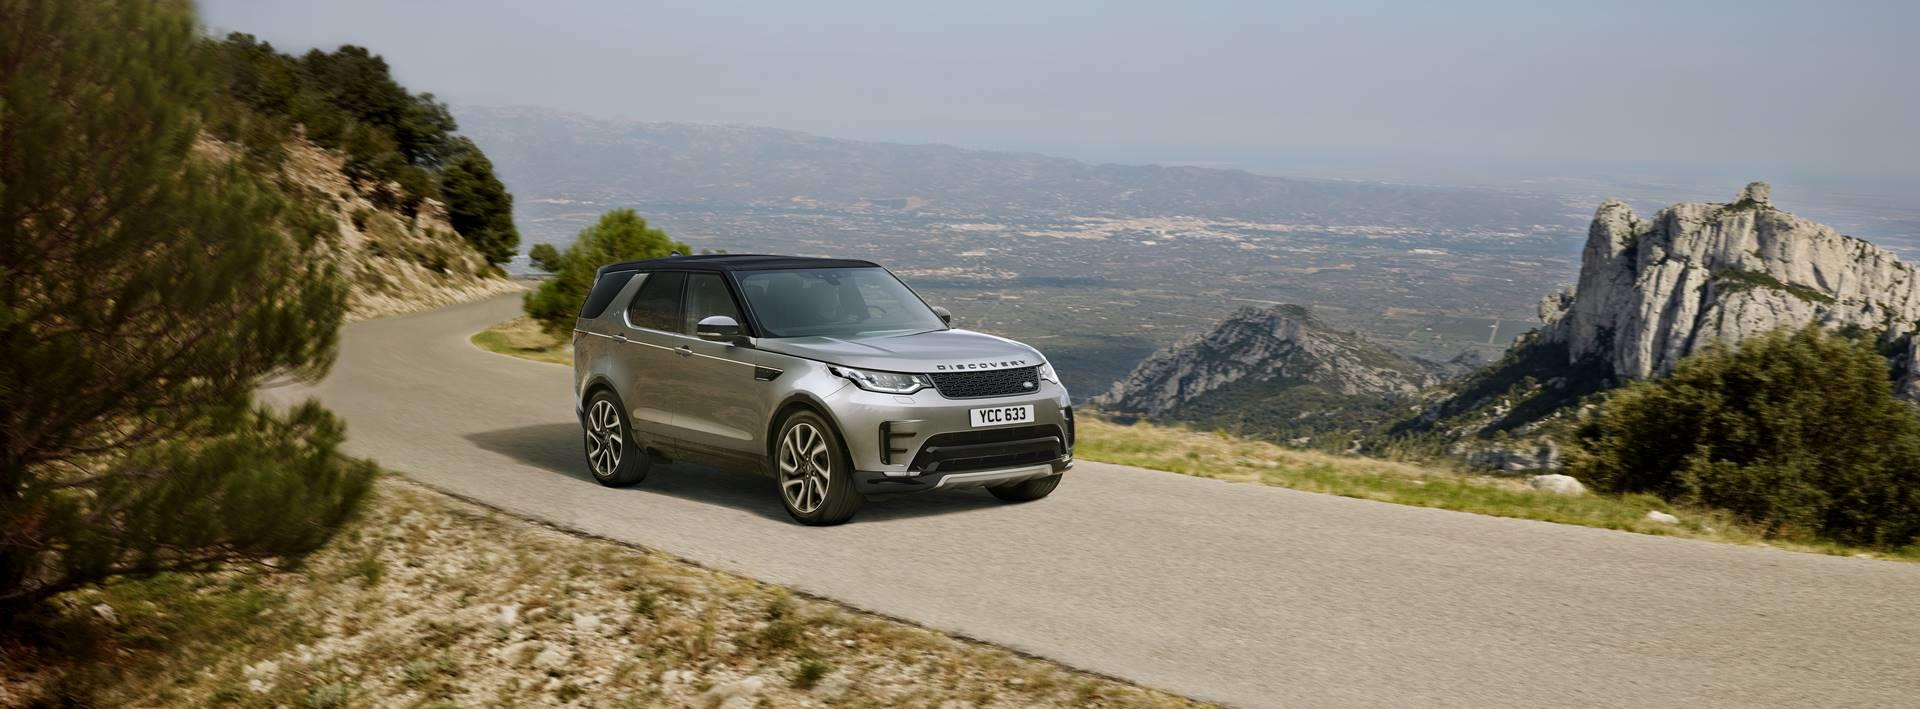 2019 Land Rover Discovery Landmark Edition